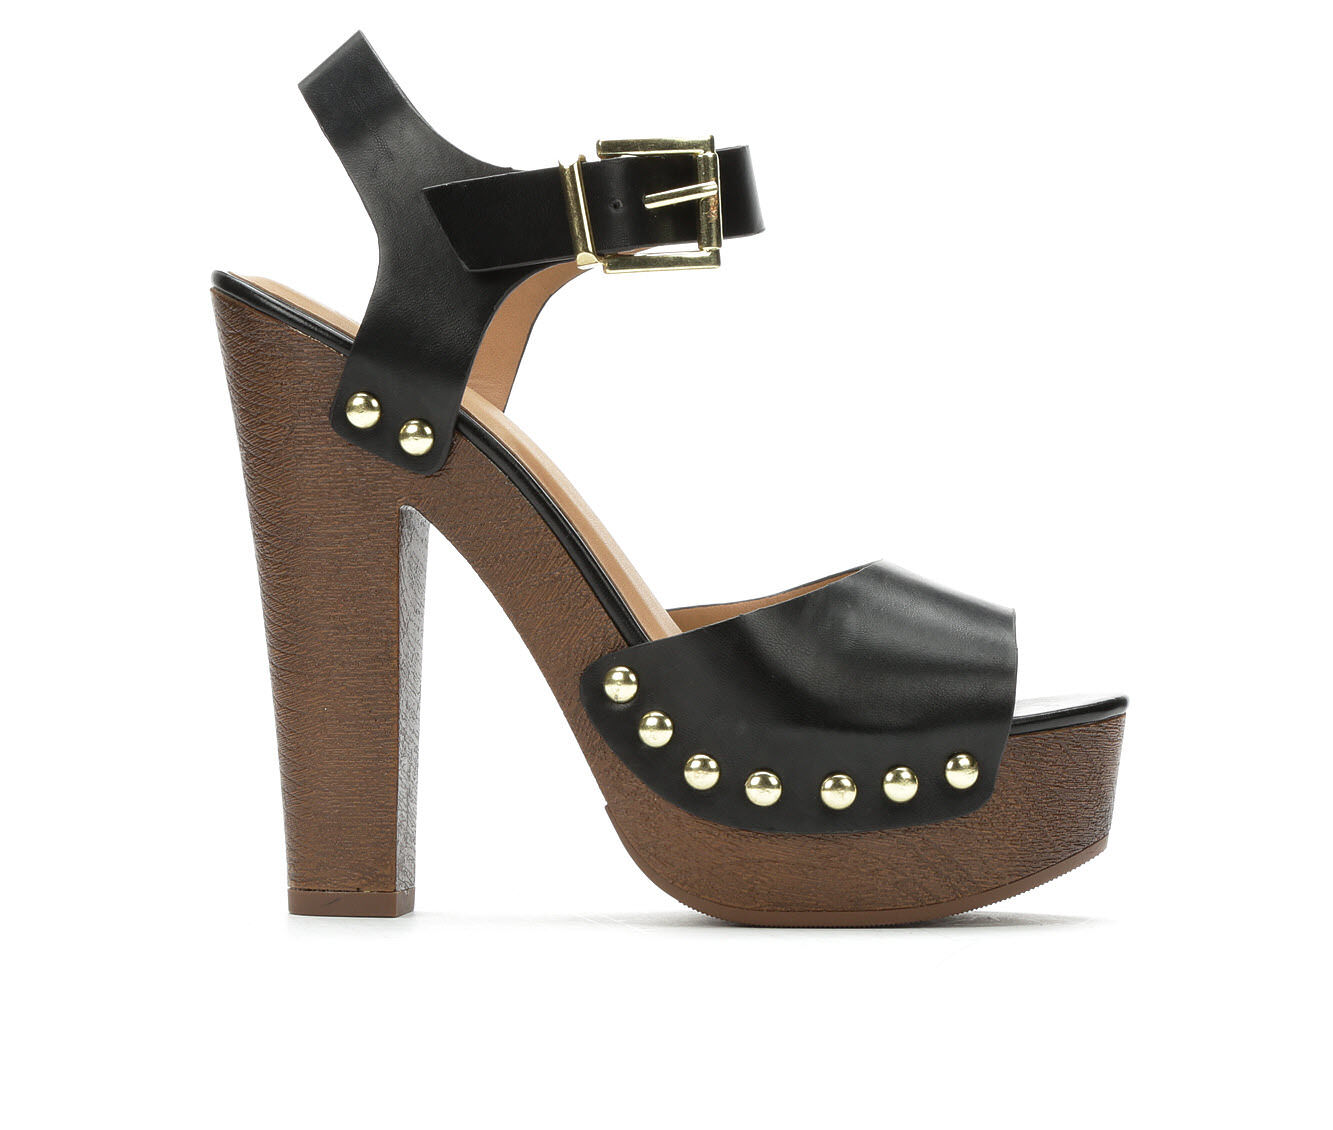 Women's Delicious Freedom High Heel Dress Sandals outlet where to buy free shipping 2014 fRDmsw3kP